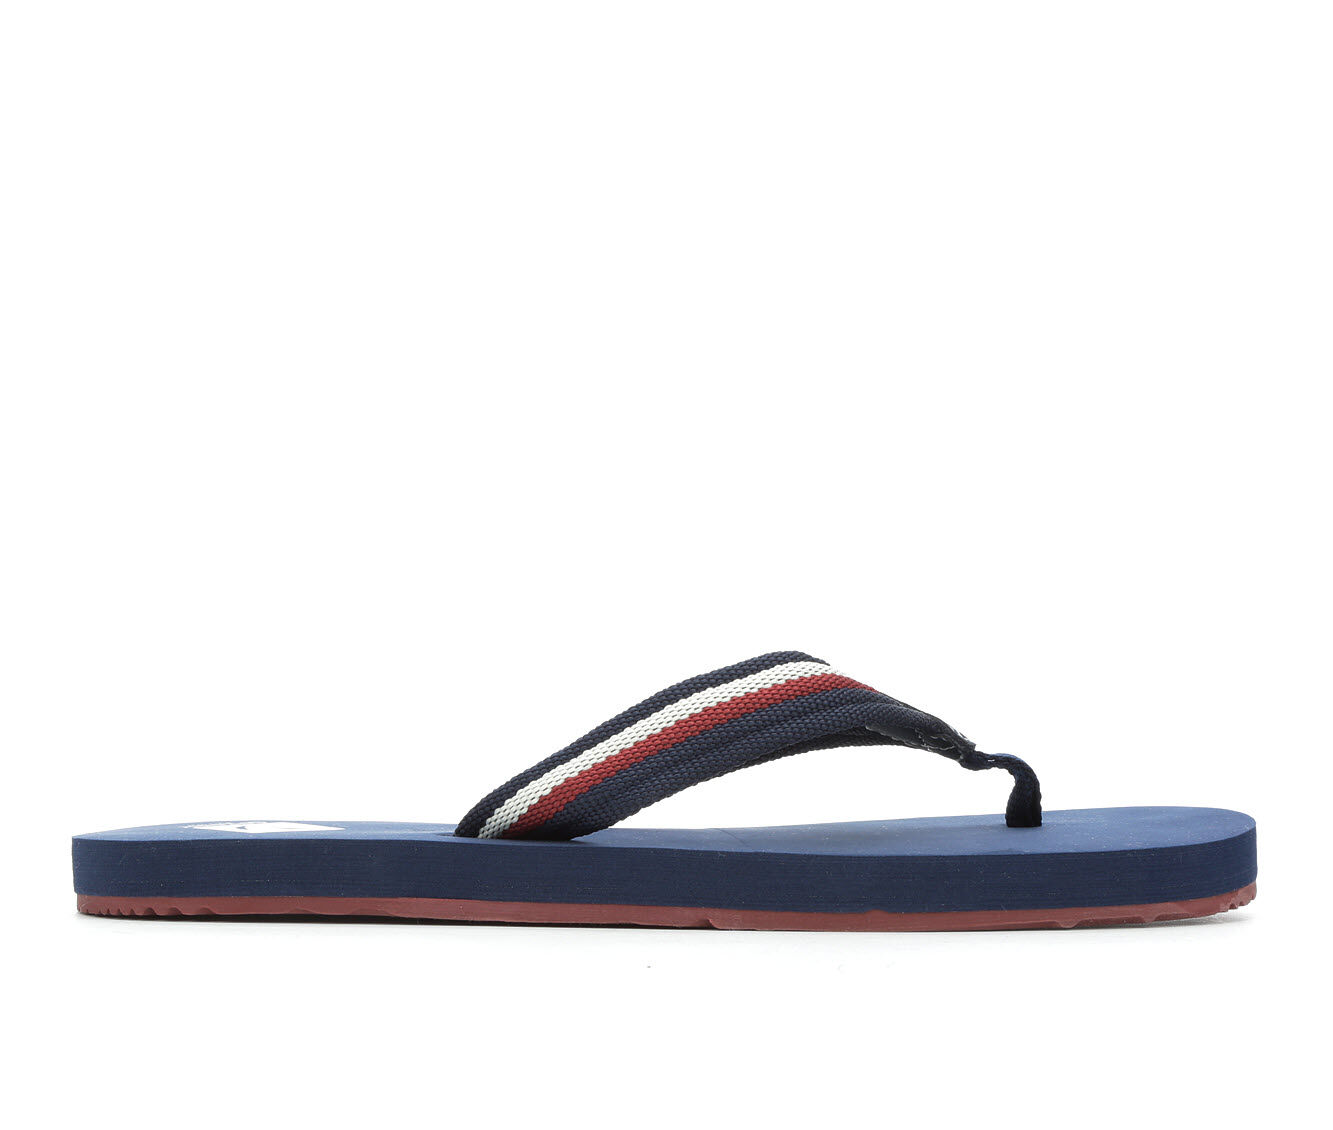 Men's Sperry Topsail Thong Flip-Flops Navy/Red